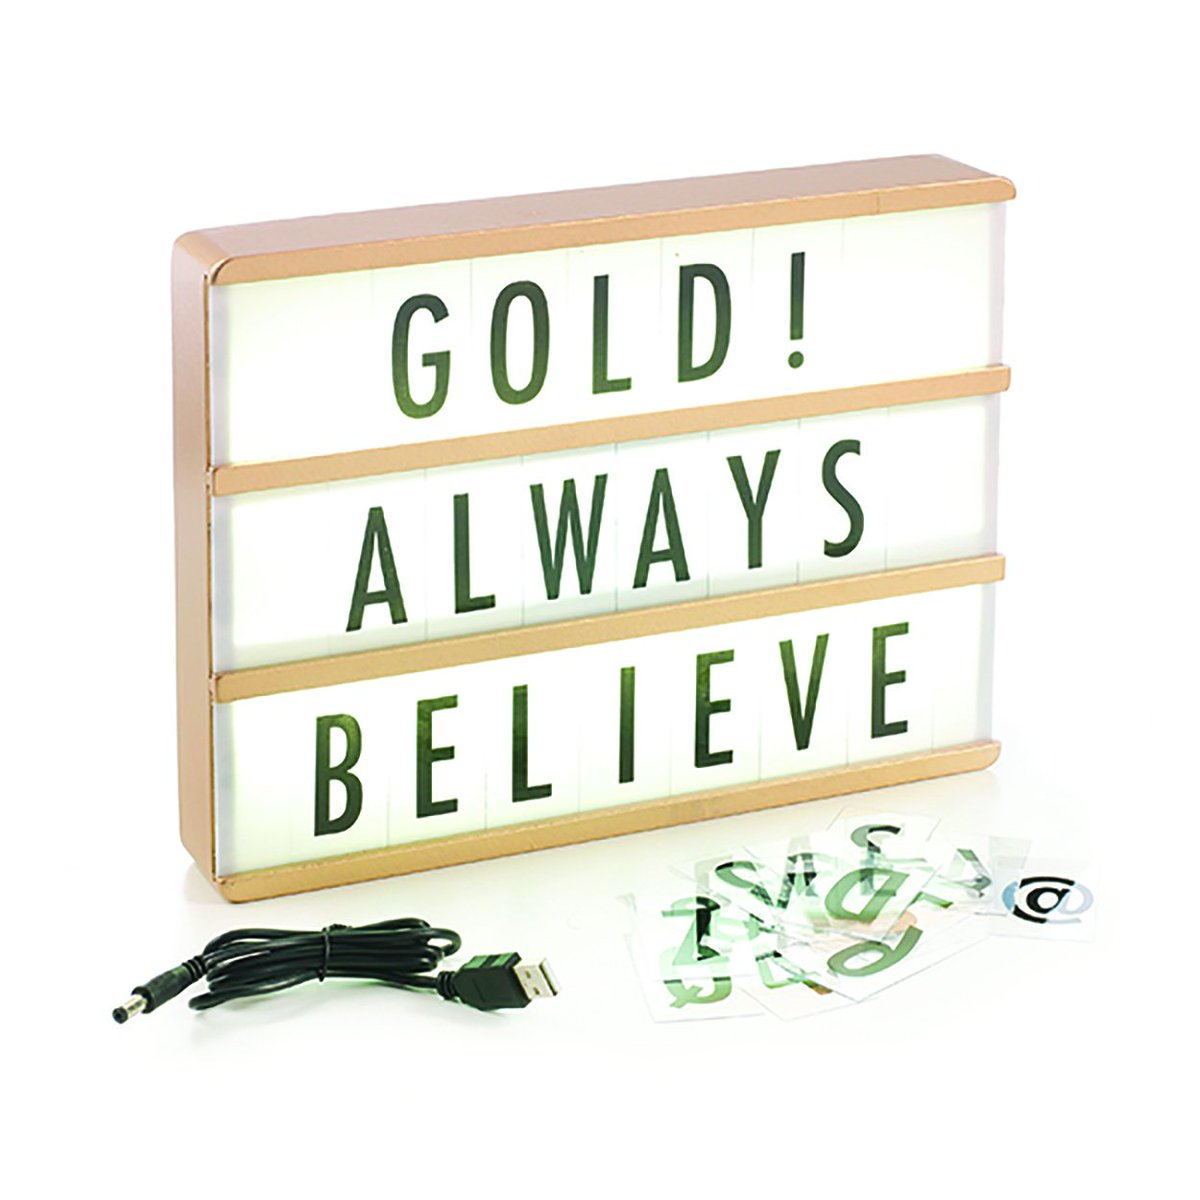 #Win a #Gold #Wooden #Light Box perfect for writing quirky messages to your family! Enter DAILY   http:// goo.gl/2tJo2d  &nbsp;   @GetGingerSnap #gift #message #home #prizedraw #competition #dailyclicktowi<br>http://pic.twitter.com/FrXoGUCDir